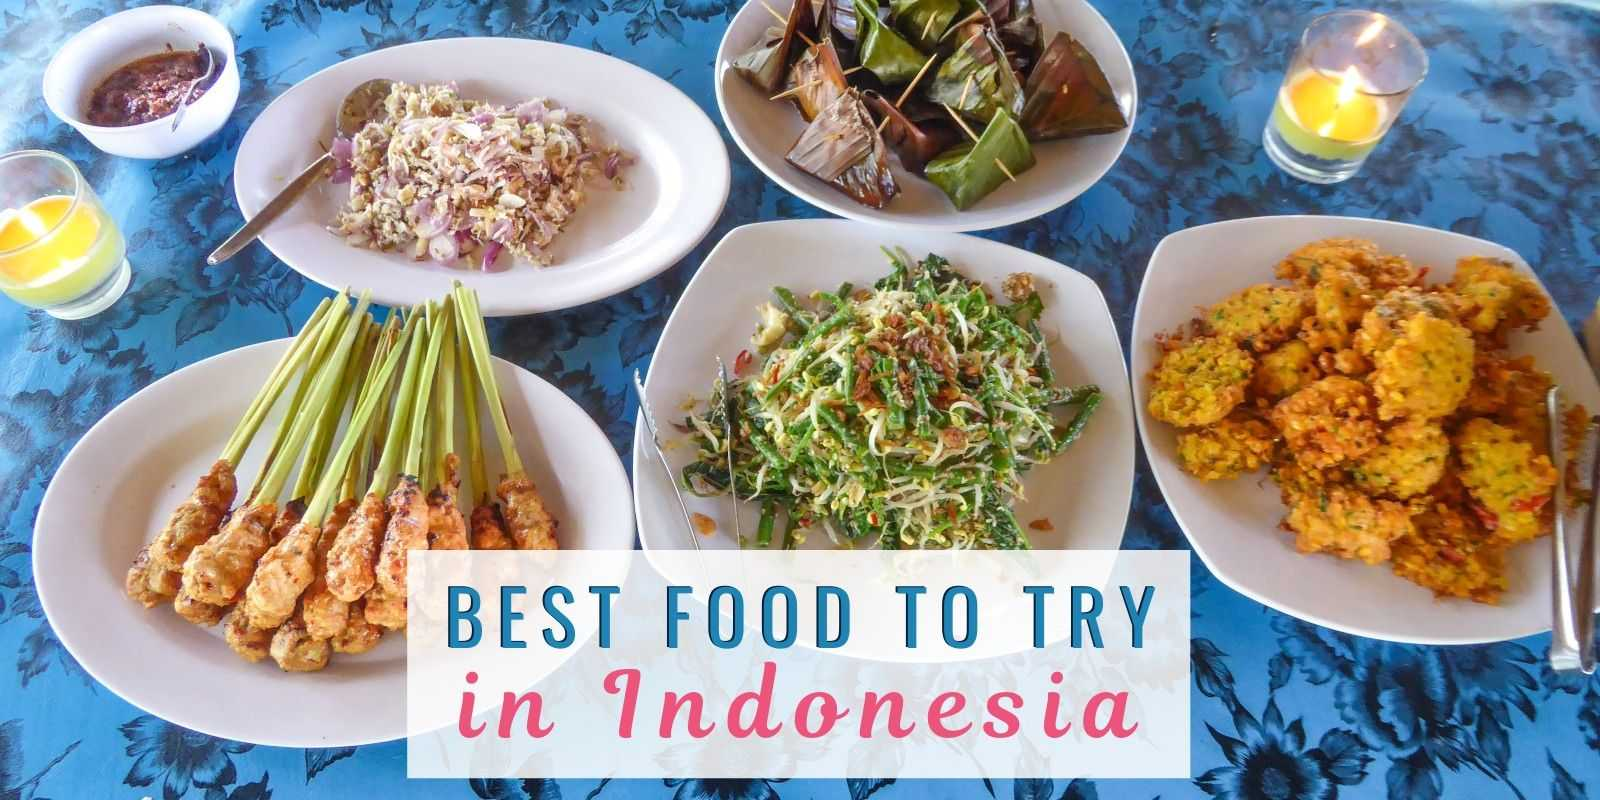 The most popular foods to try in Indonesia